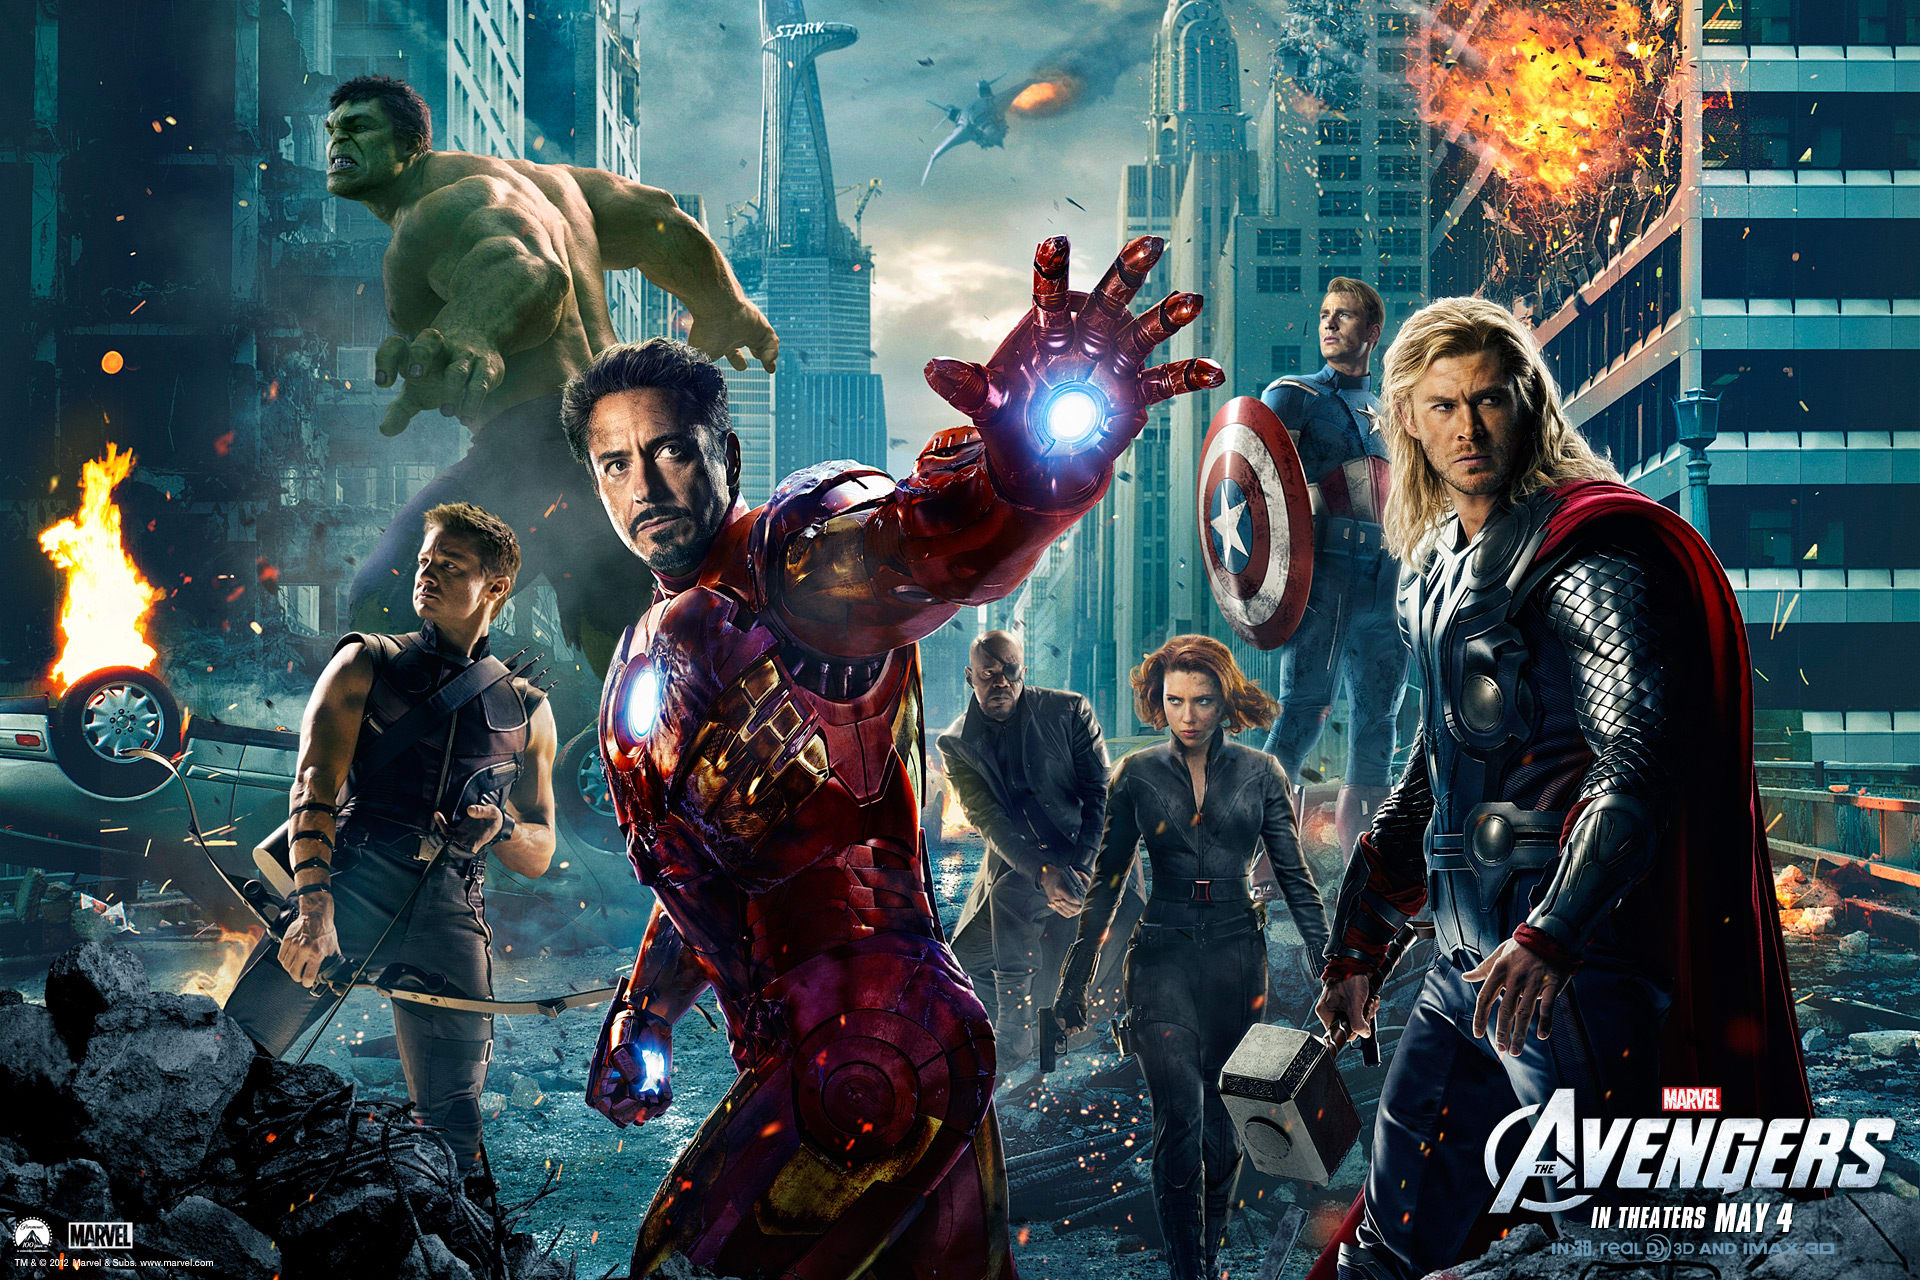 Marvel's The Avengers Wallpapers